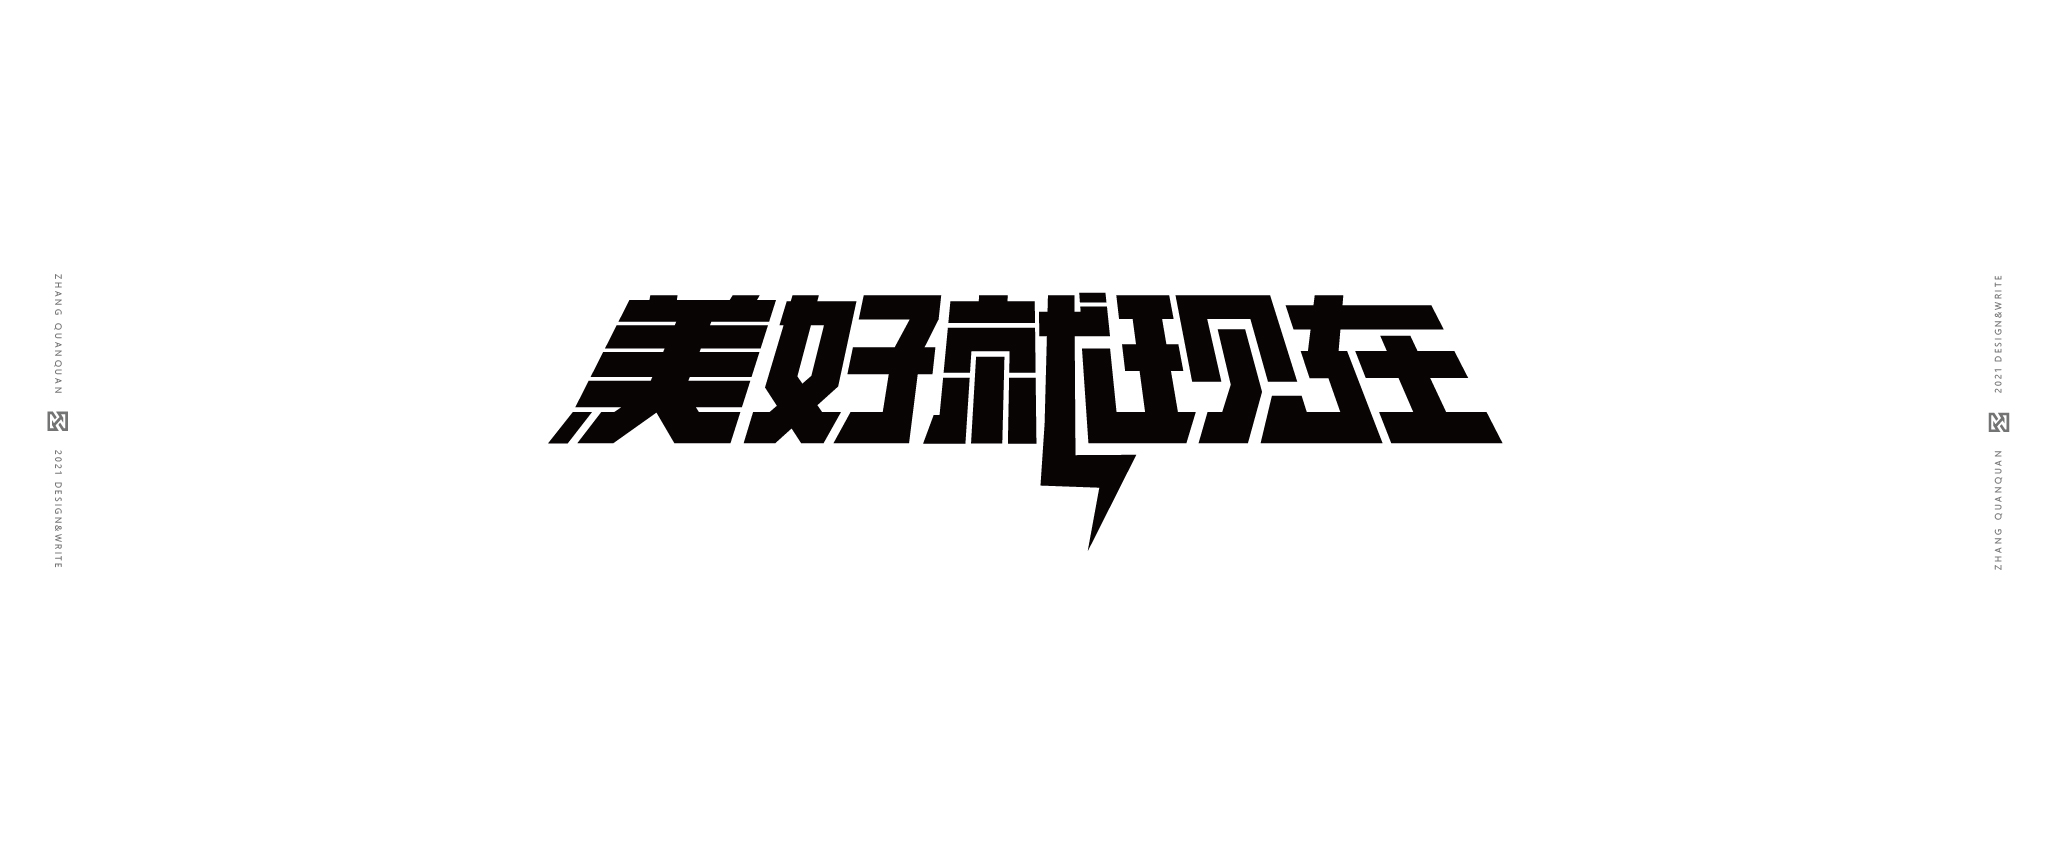 20P Collection of the latest Chinese font design schemes in 2021 #.190